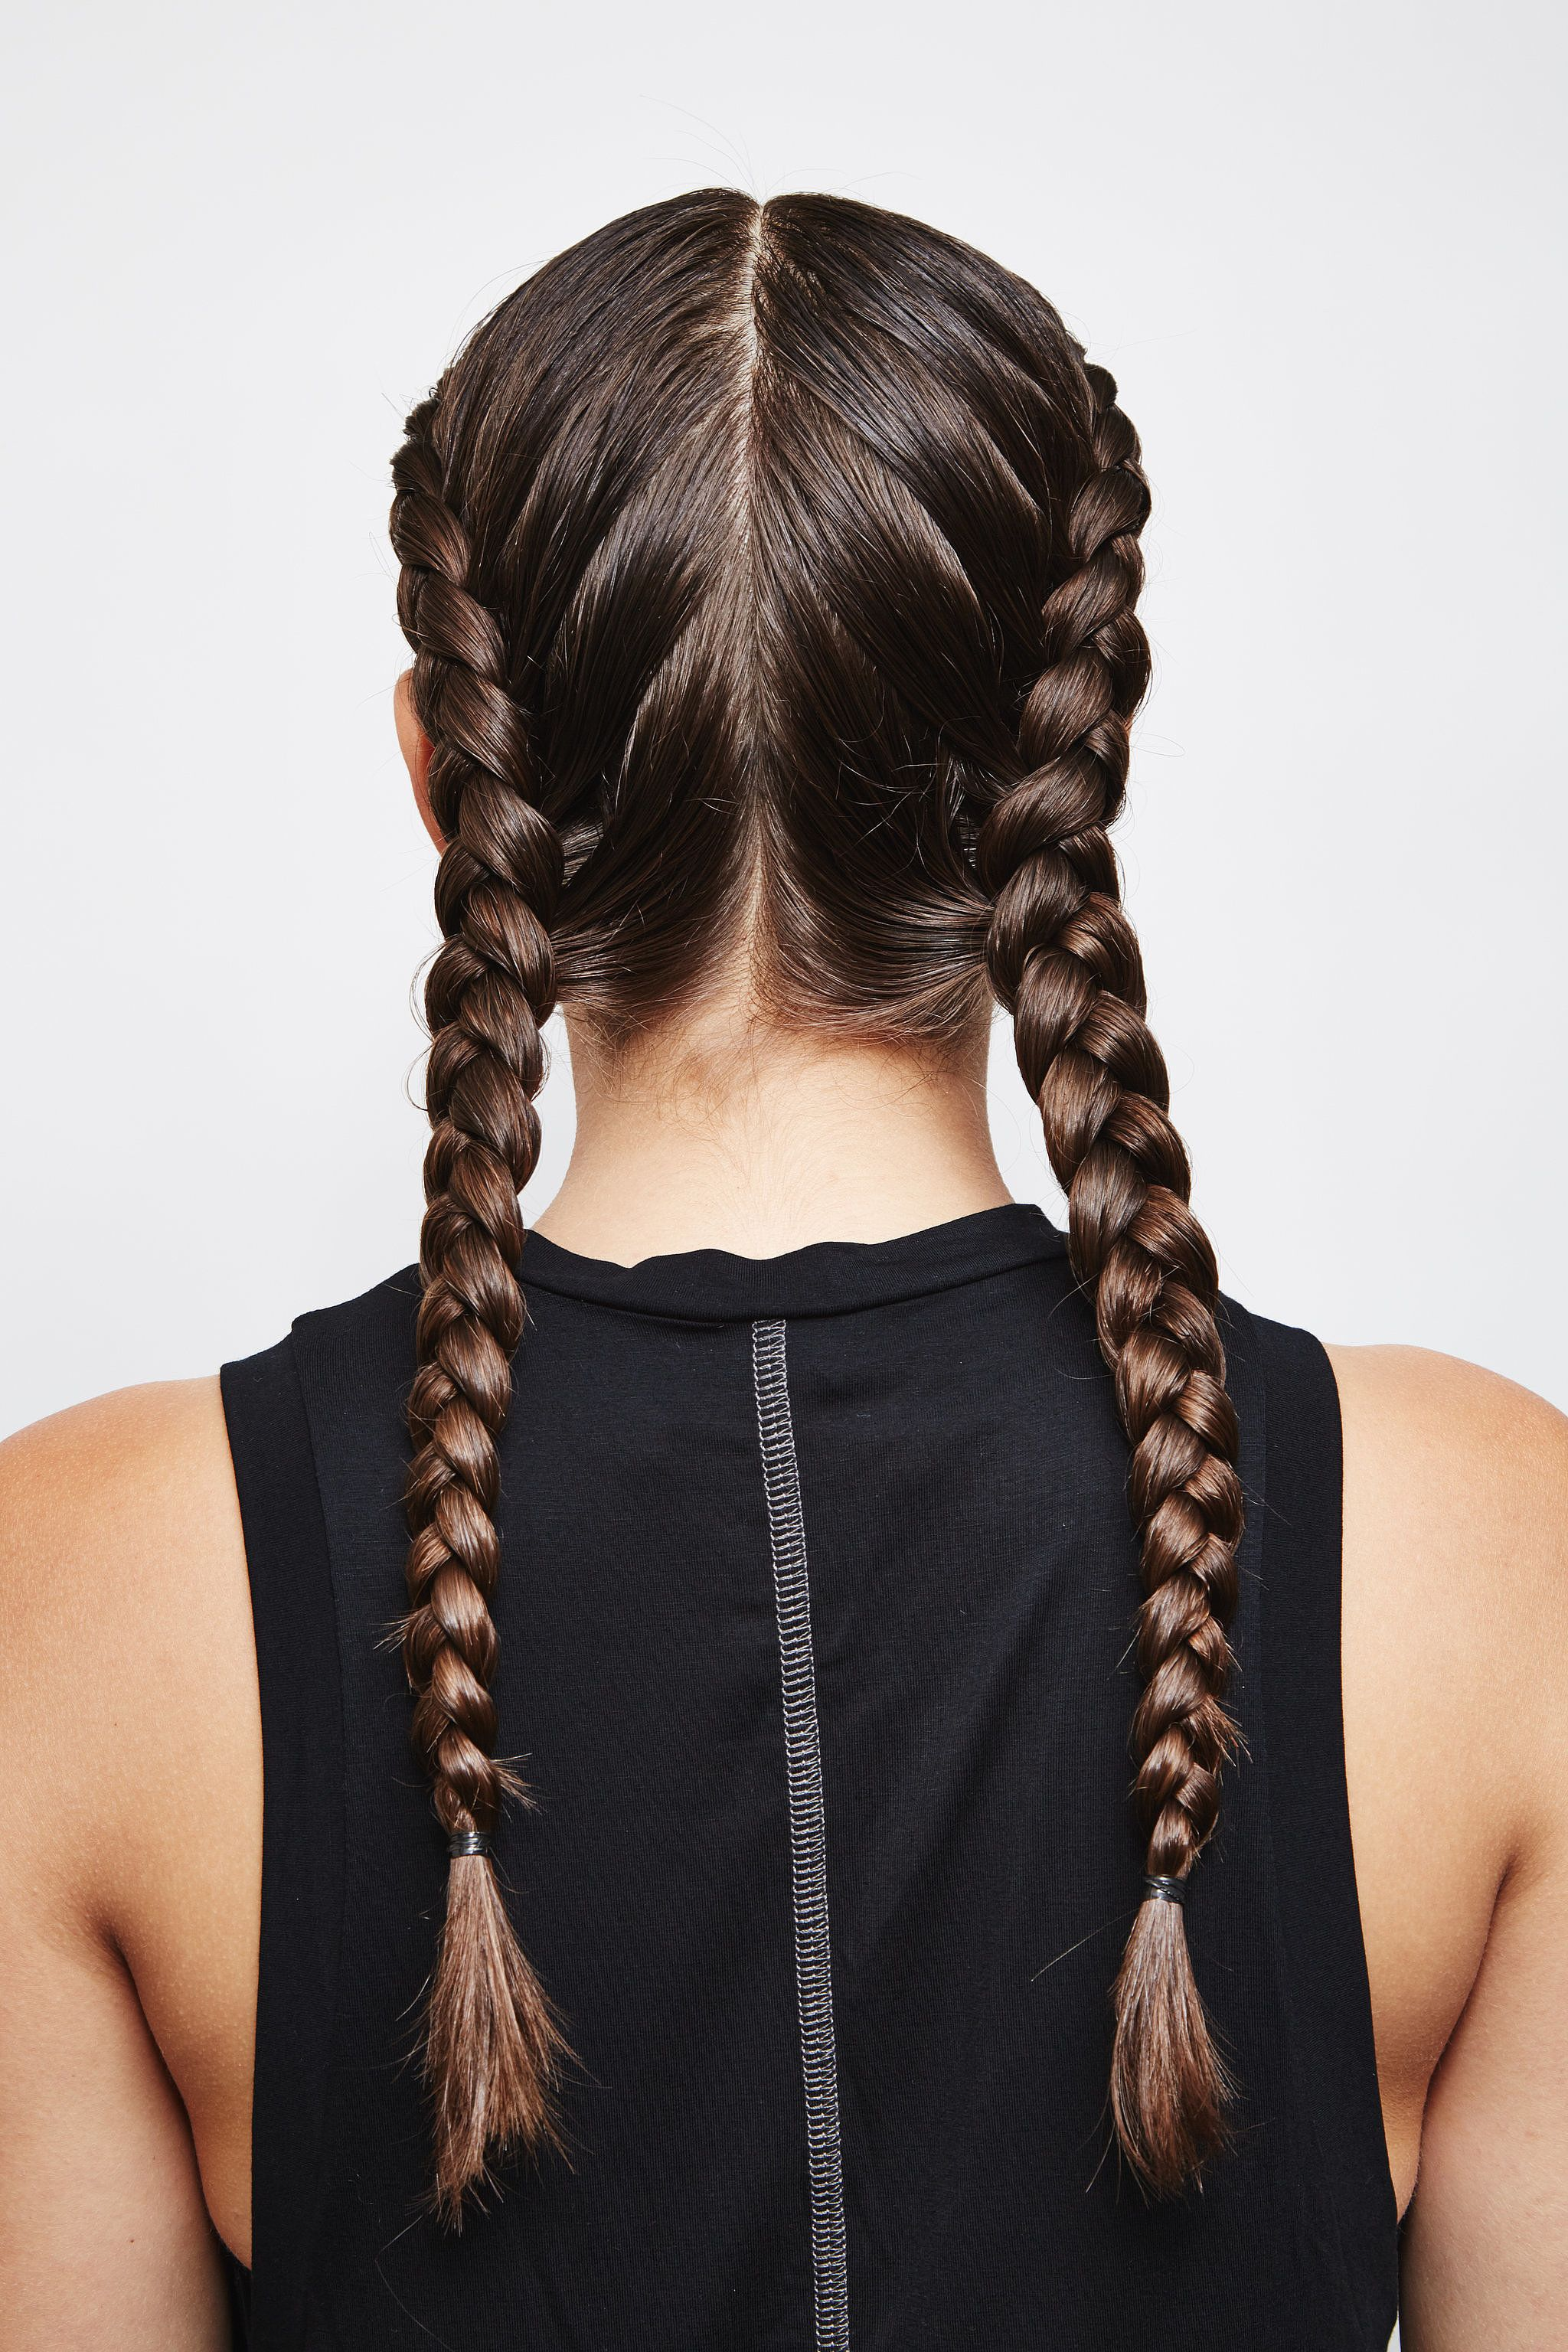 Why Exactly Is It Called A French Braid Two Braid Hairstyles French Braid Hairstyles Hair Styles